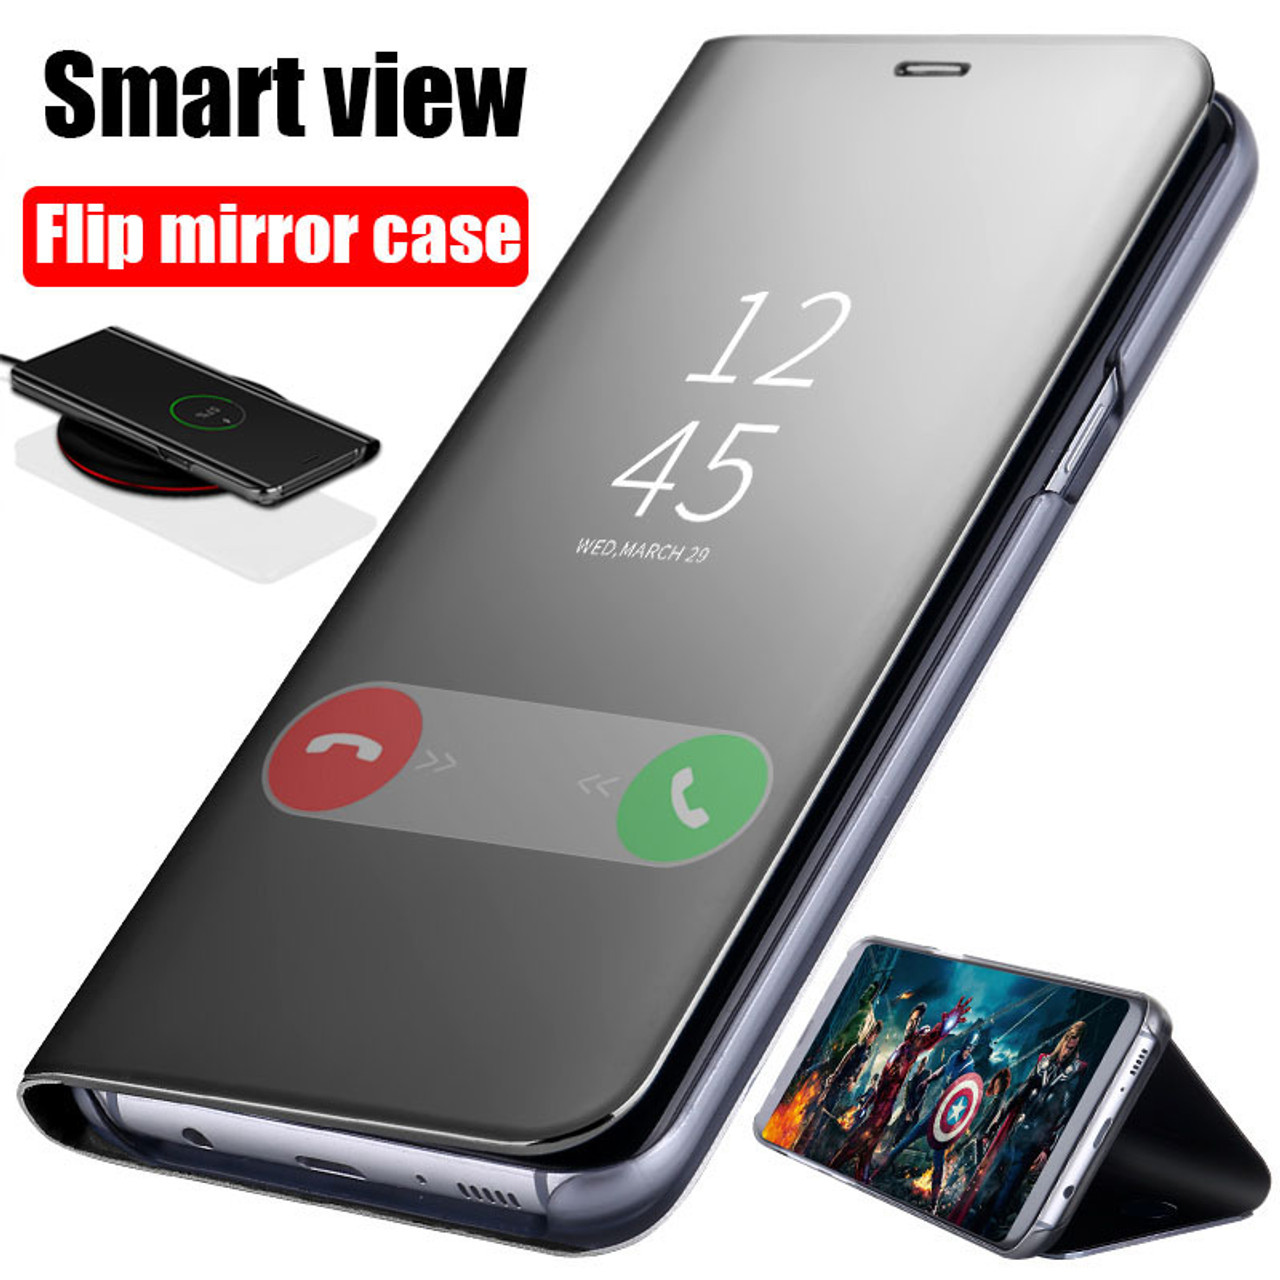 100% authentic b5ab5 bcb70 Clear View Mirror Flip Phone Case For Samsung Galaxy S8 S9 Plus S7 edge  Full Cover For Samsung S8 S9 Note 8 9 Leather Flip Cases